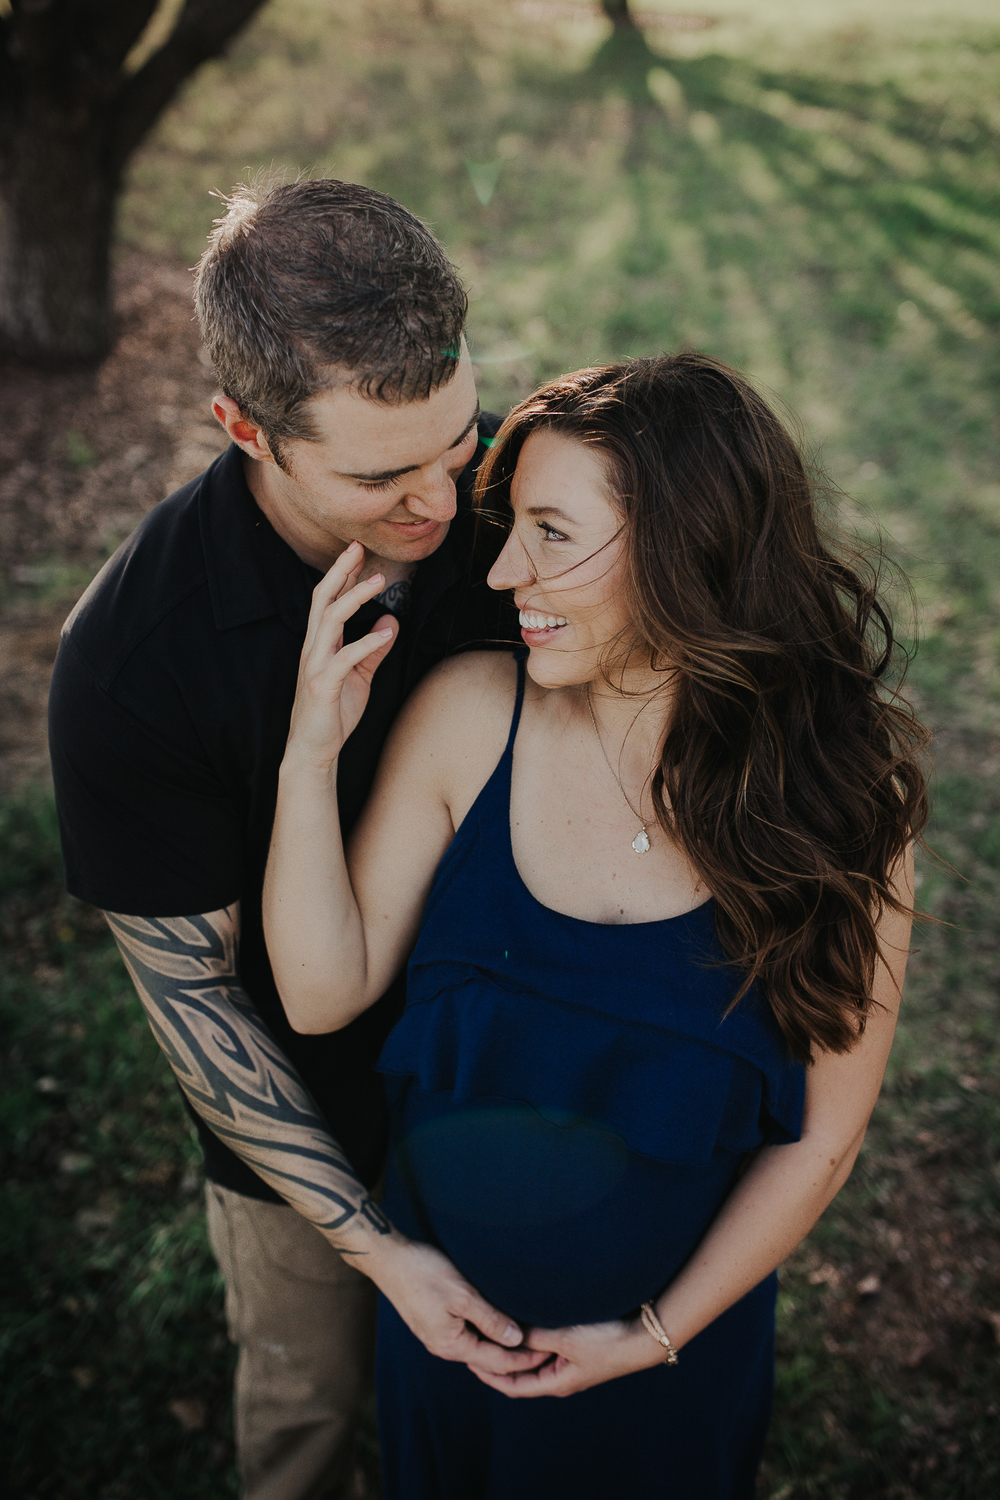 Haldelman-Maternity-Session-Kansas-City-Jesse-Salter-Photography.jpg